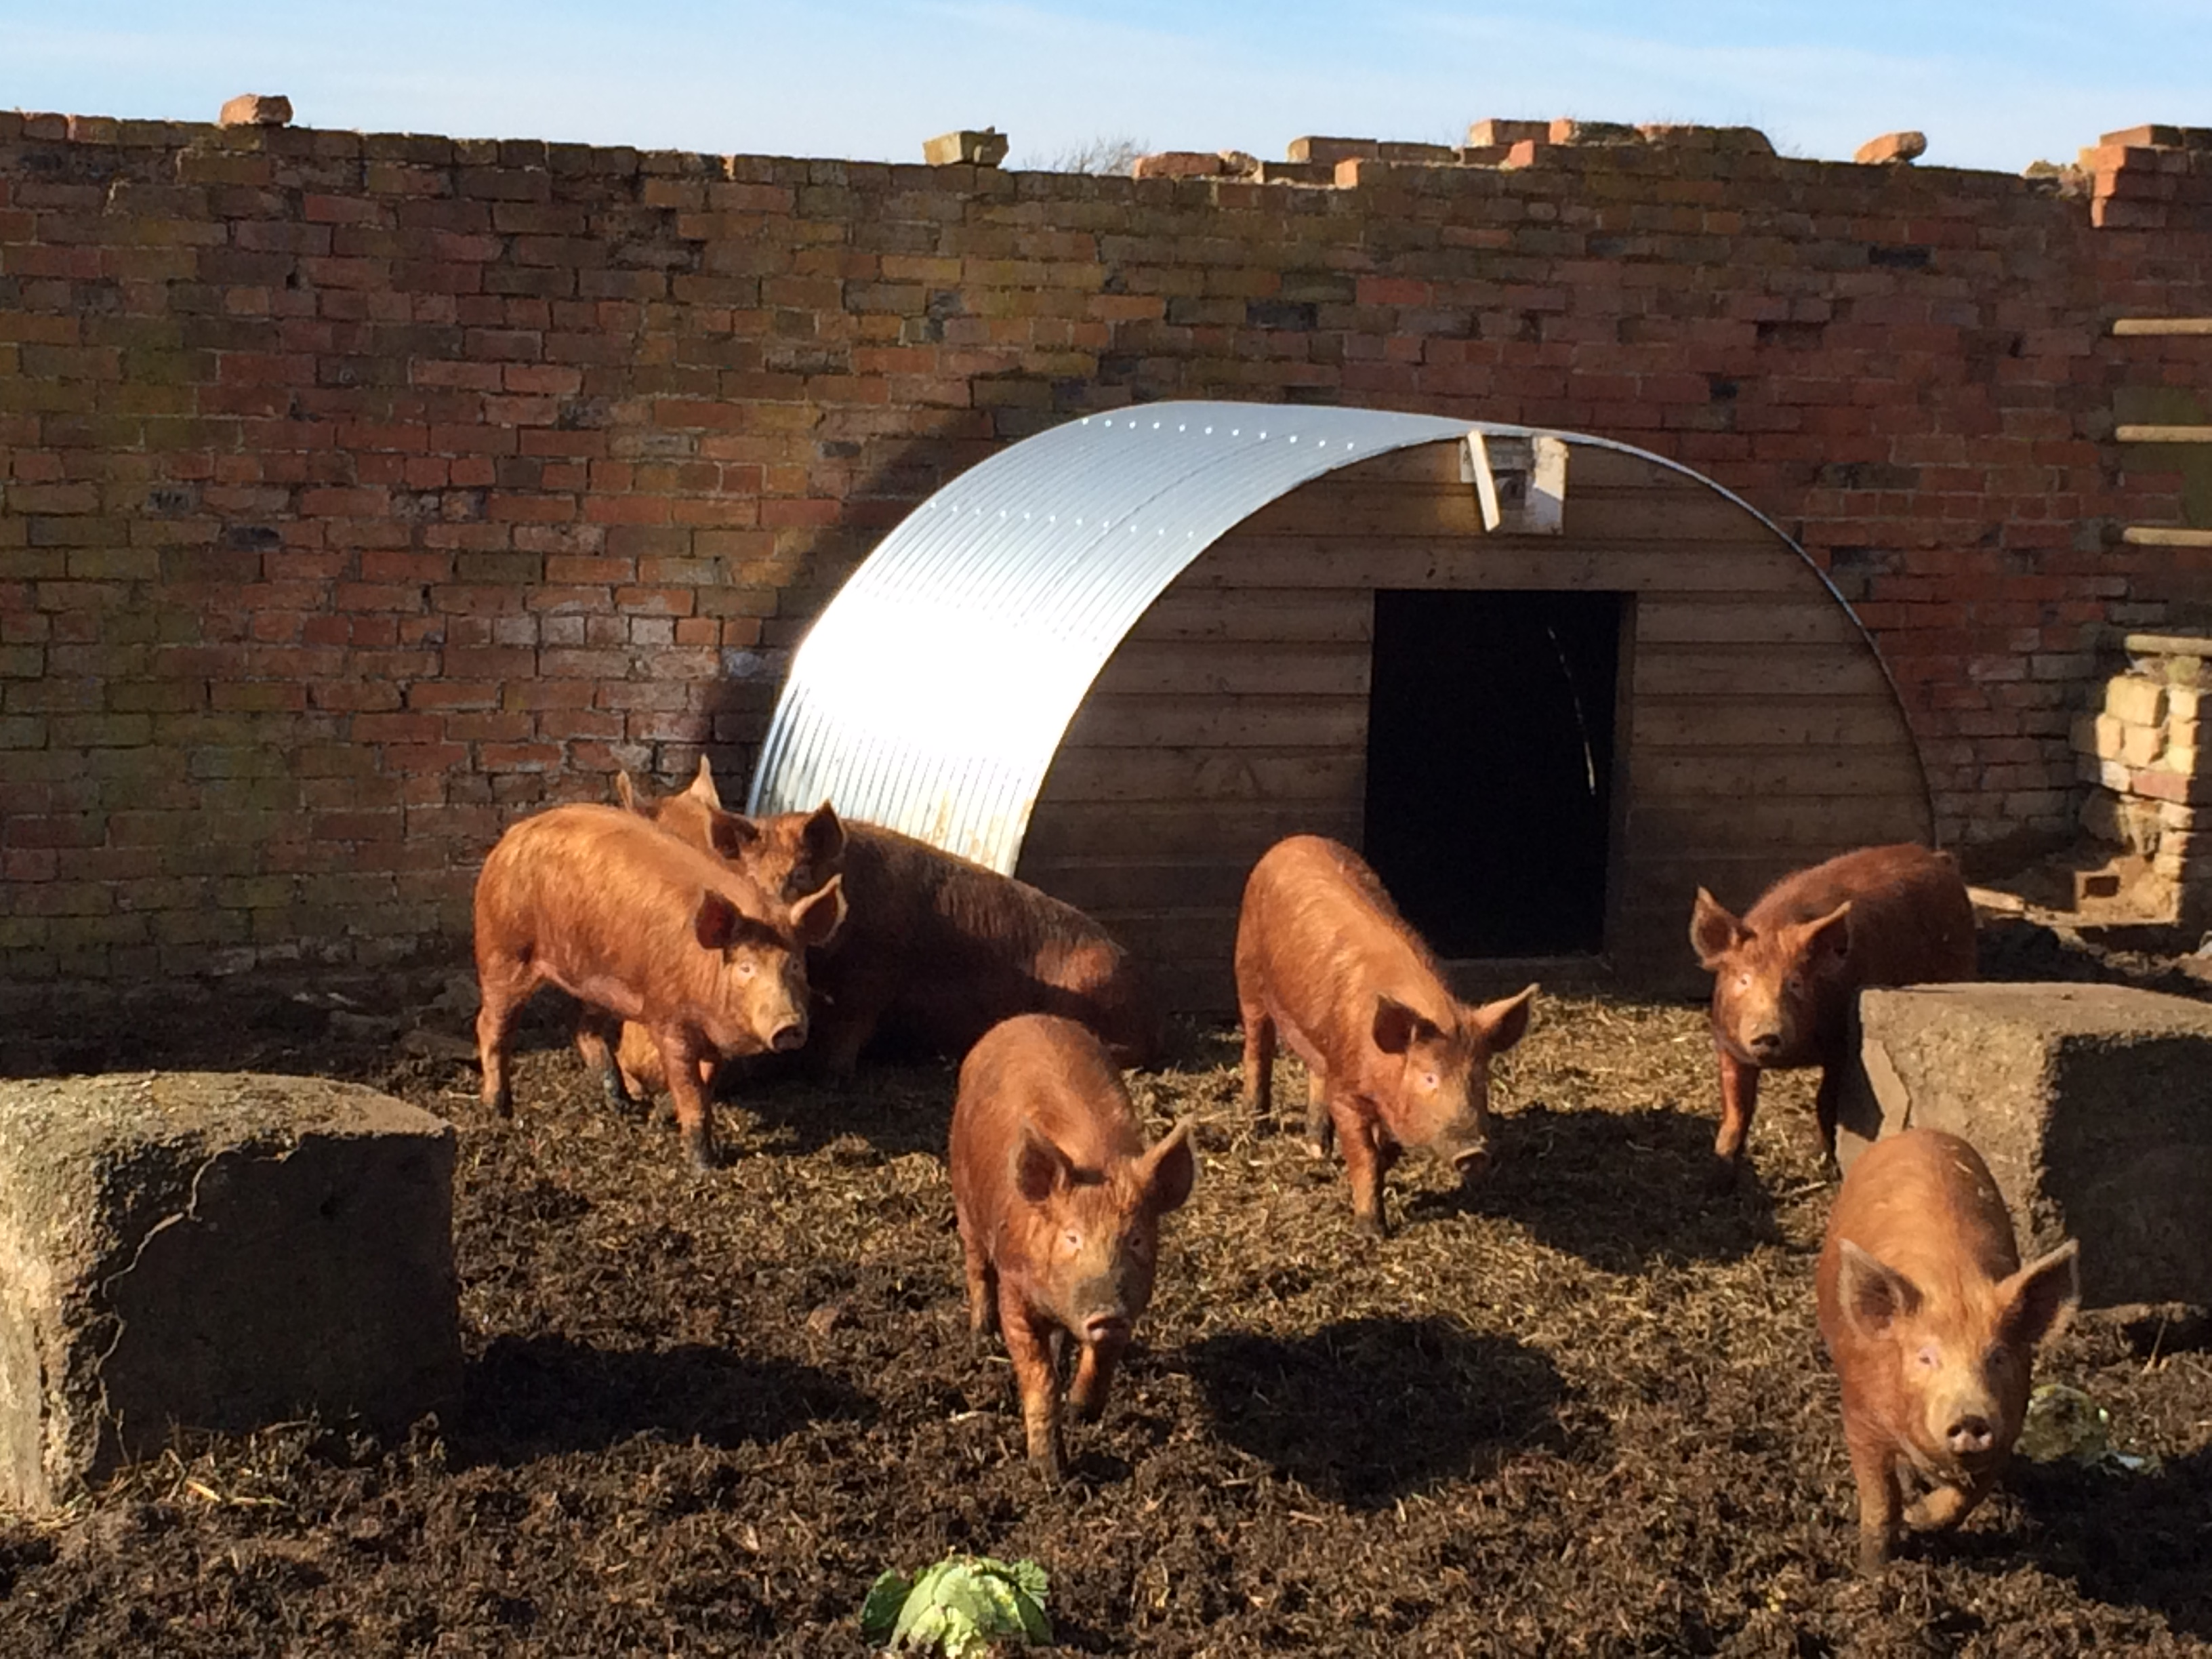 Tamworth pigs on the farm